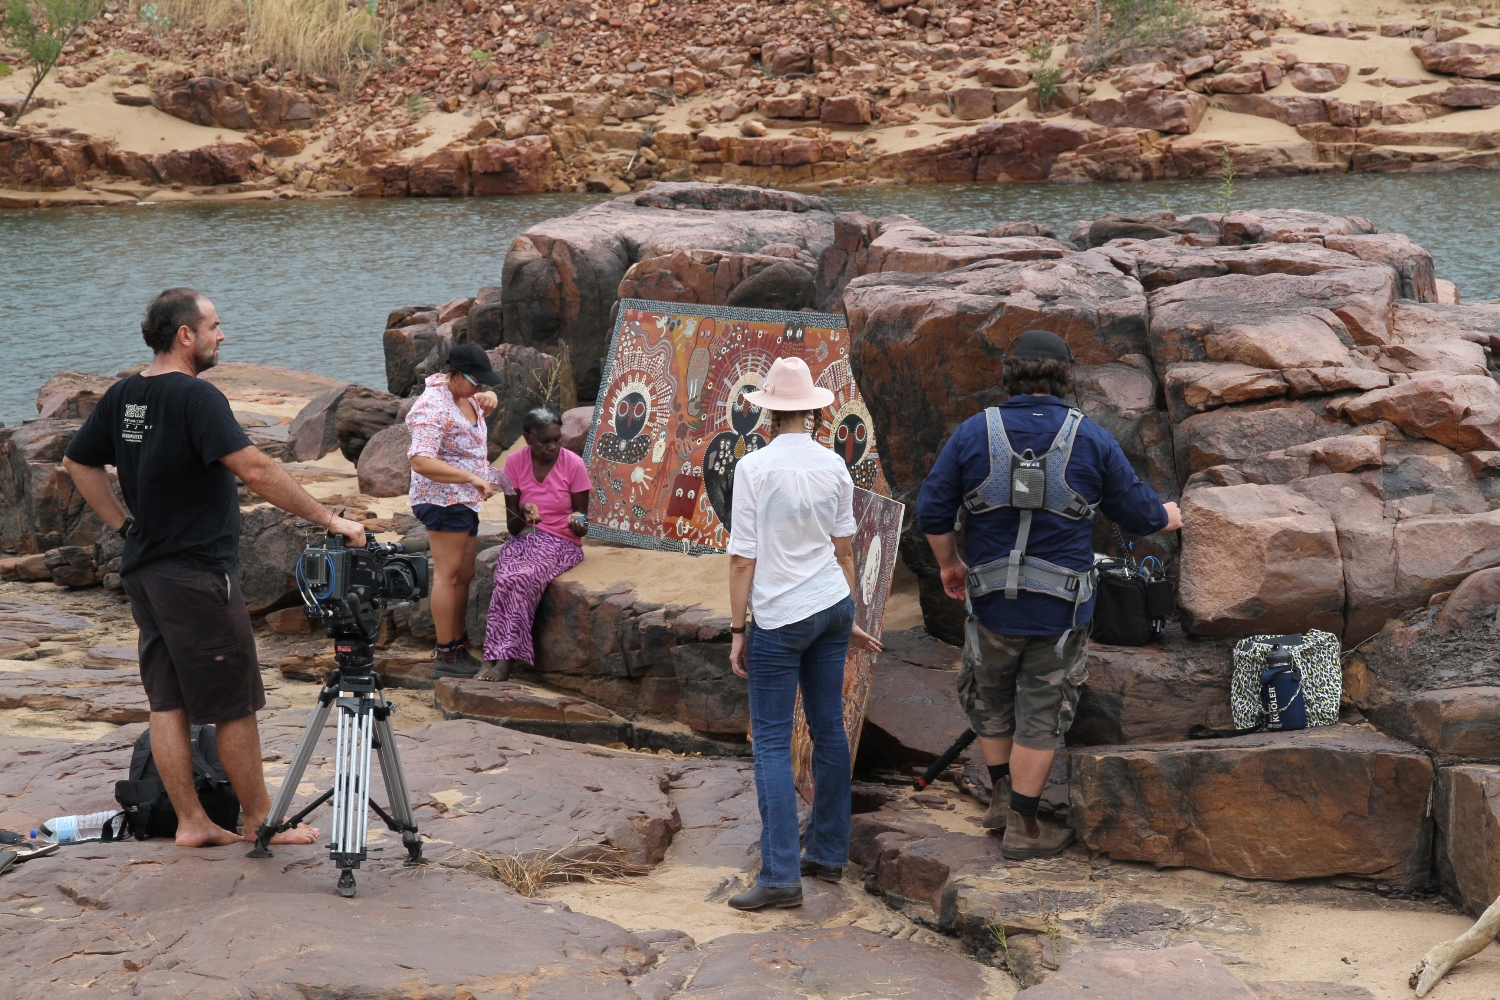 Artist Betty Bundamurra, the ICS crew (Camera: Jason Thomas, Sound: Owen Hughes & Director: Jub Clerc) and DRS Project Officer, Geraldine Henrici preparing to record at Malinjarr Gorge. © AGWA 2015